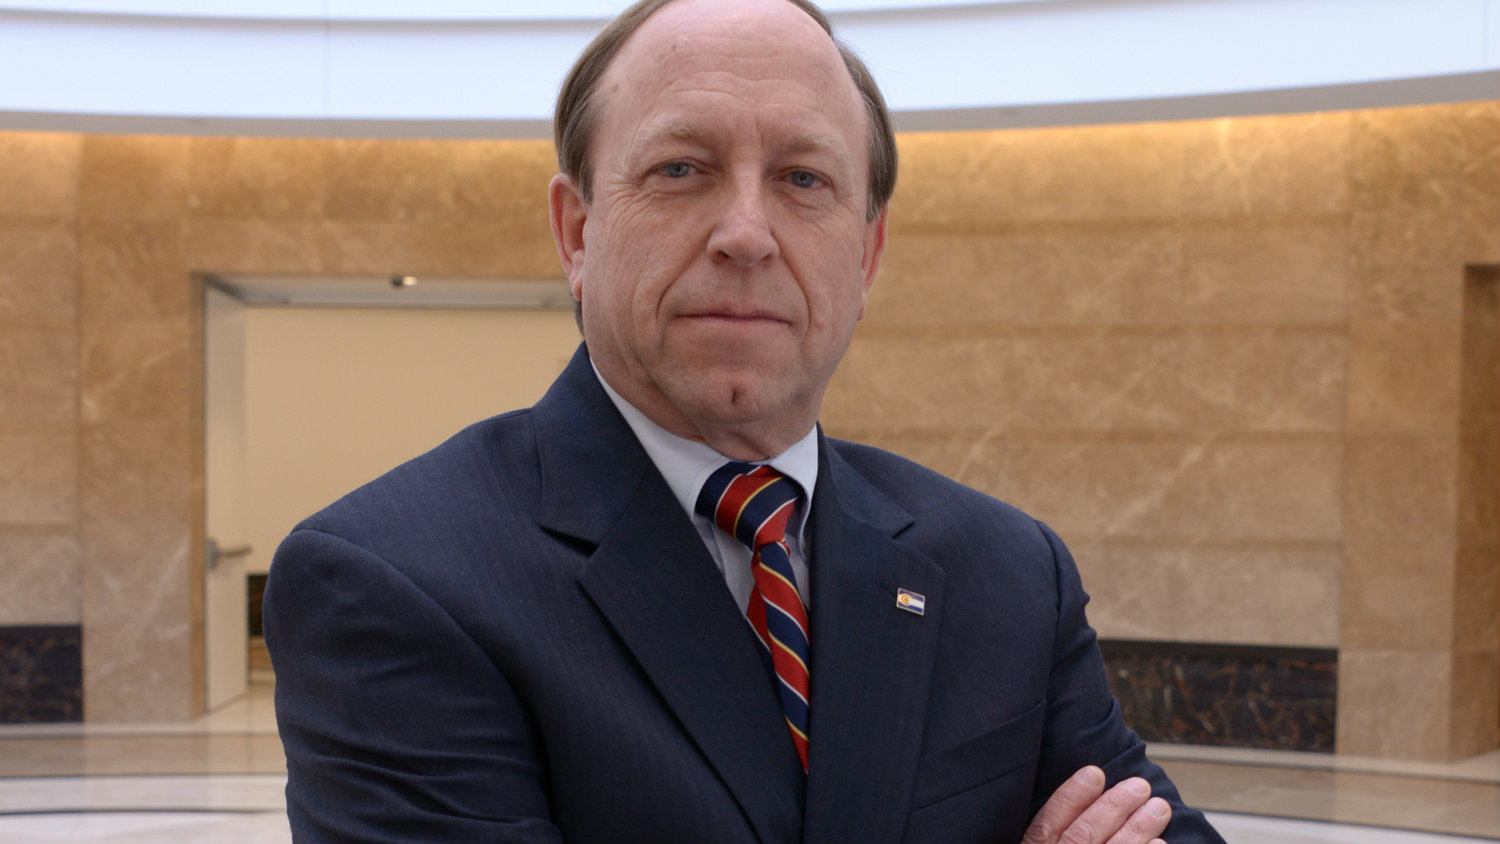 Colorado Springs mayor John W. Suthers in the Capitol rotunda.